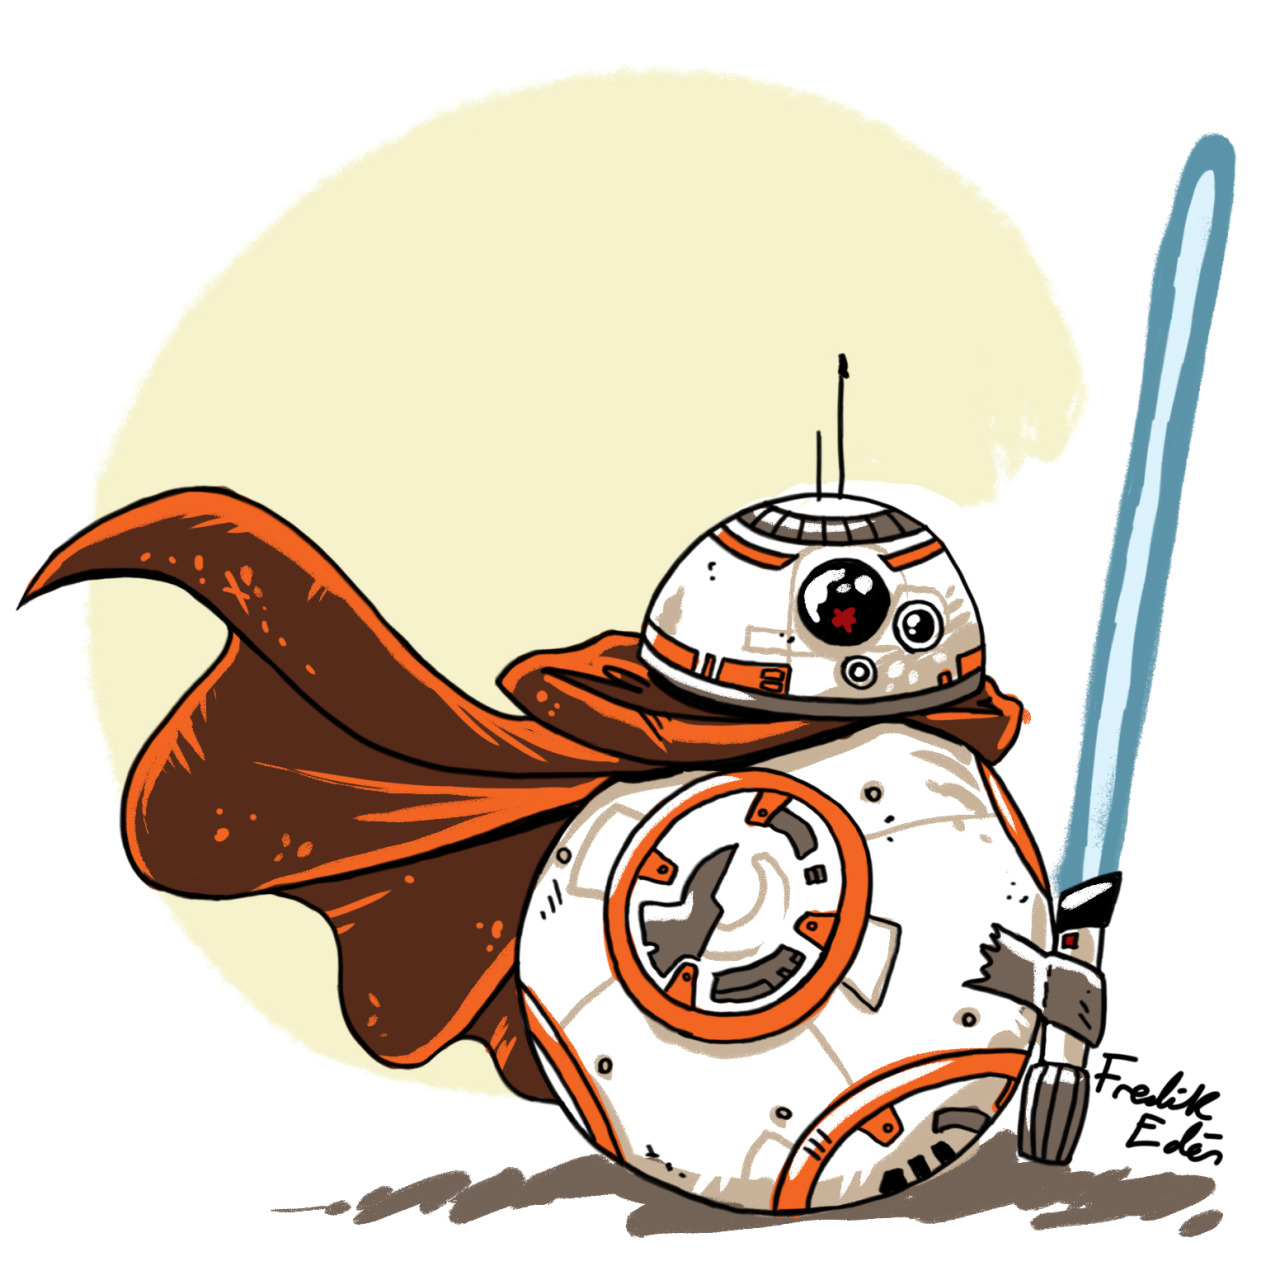 Bb8 clipart getdrawings free download, star wars robot bb8 drawing